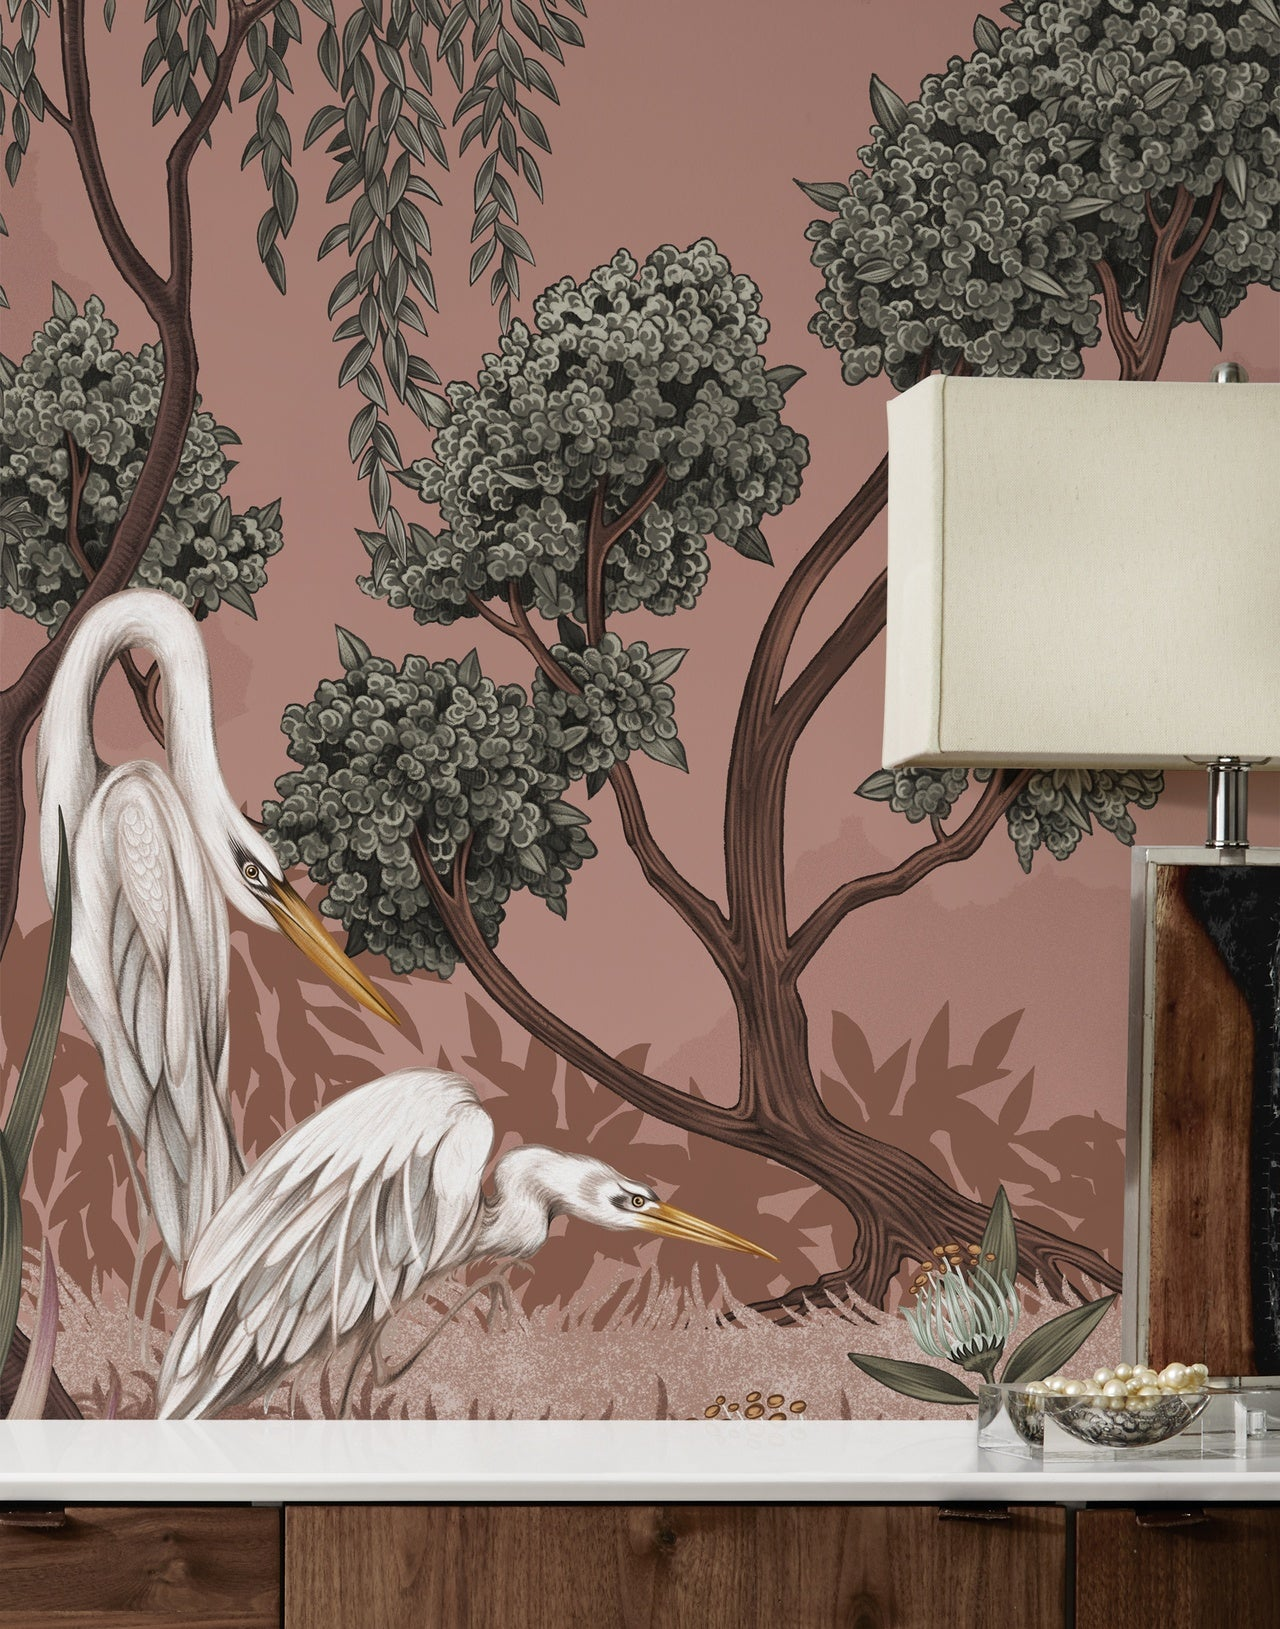 Night Heron Carnelian mural | Lisel Jane Ashlock collection | modern floral wallpapers and murals | Hygge & West